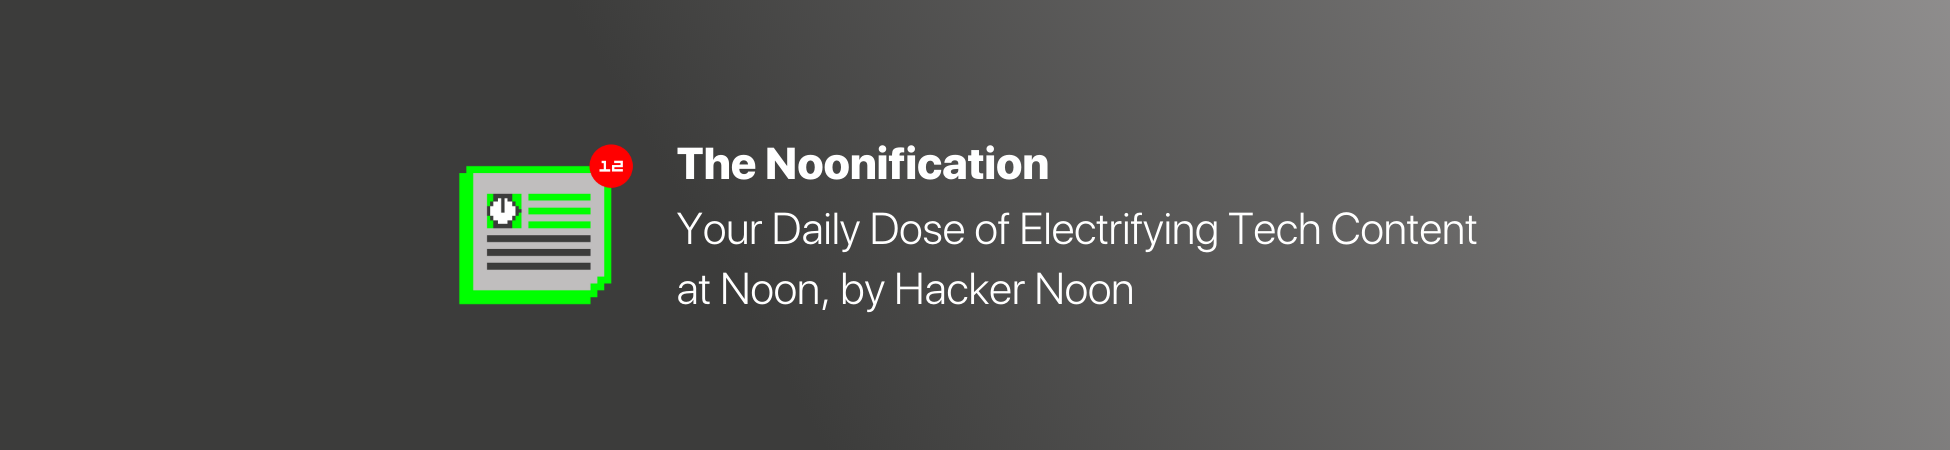 The Noonification: Your Daily Dose of Electrifying Tech Content at Noon, by HackerNoon